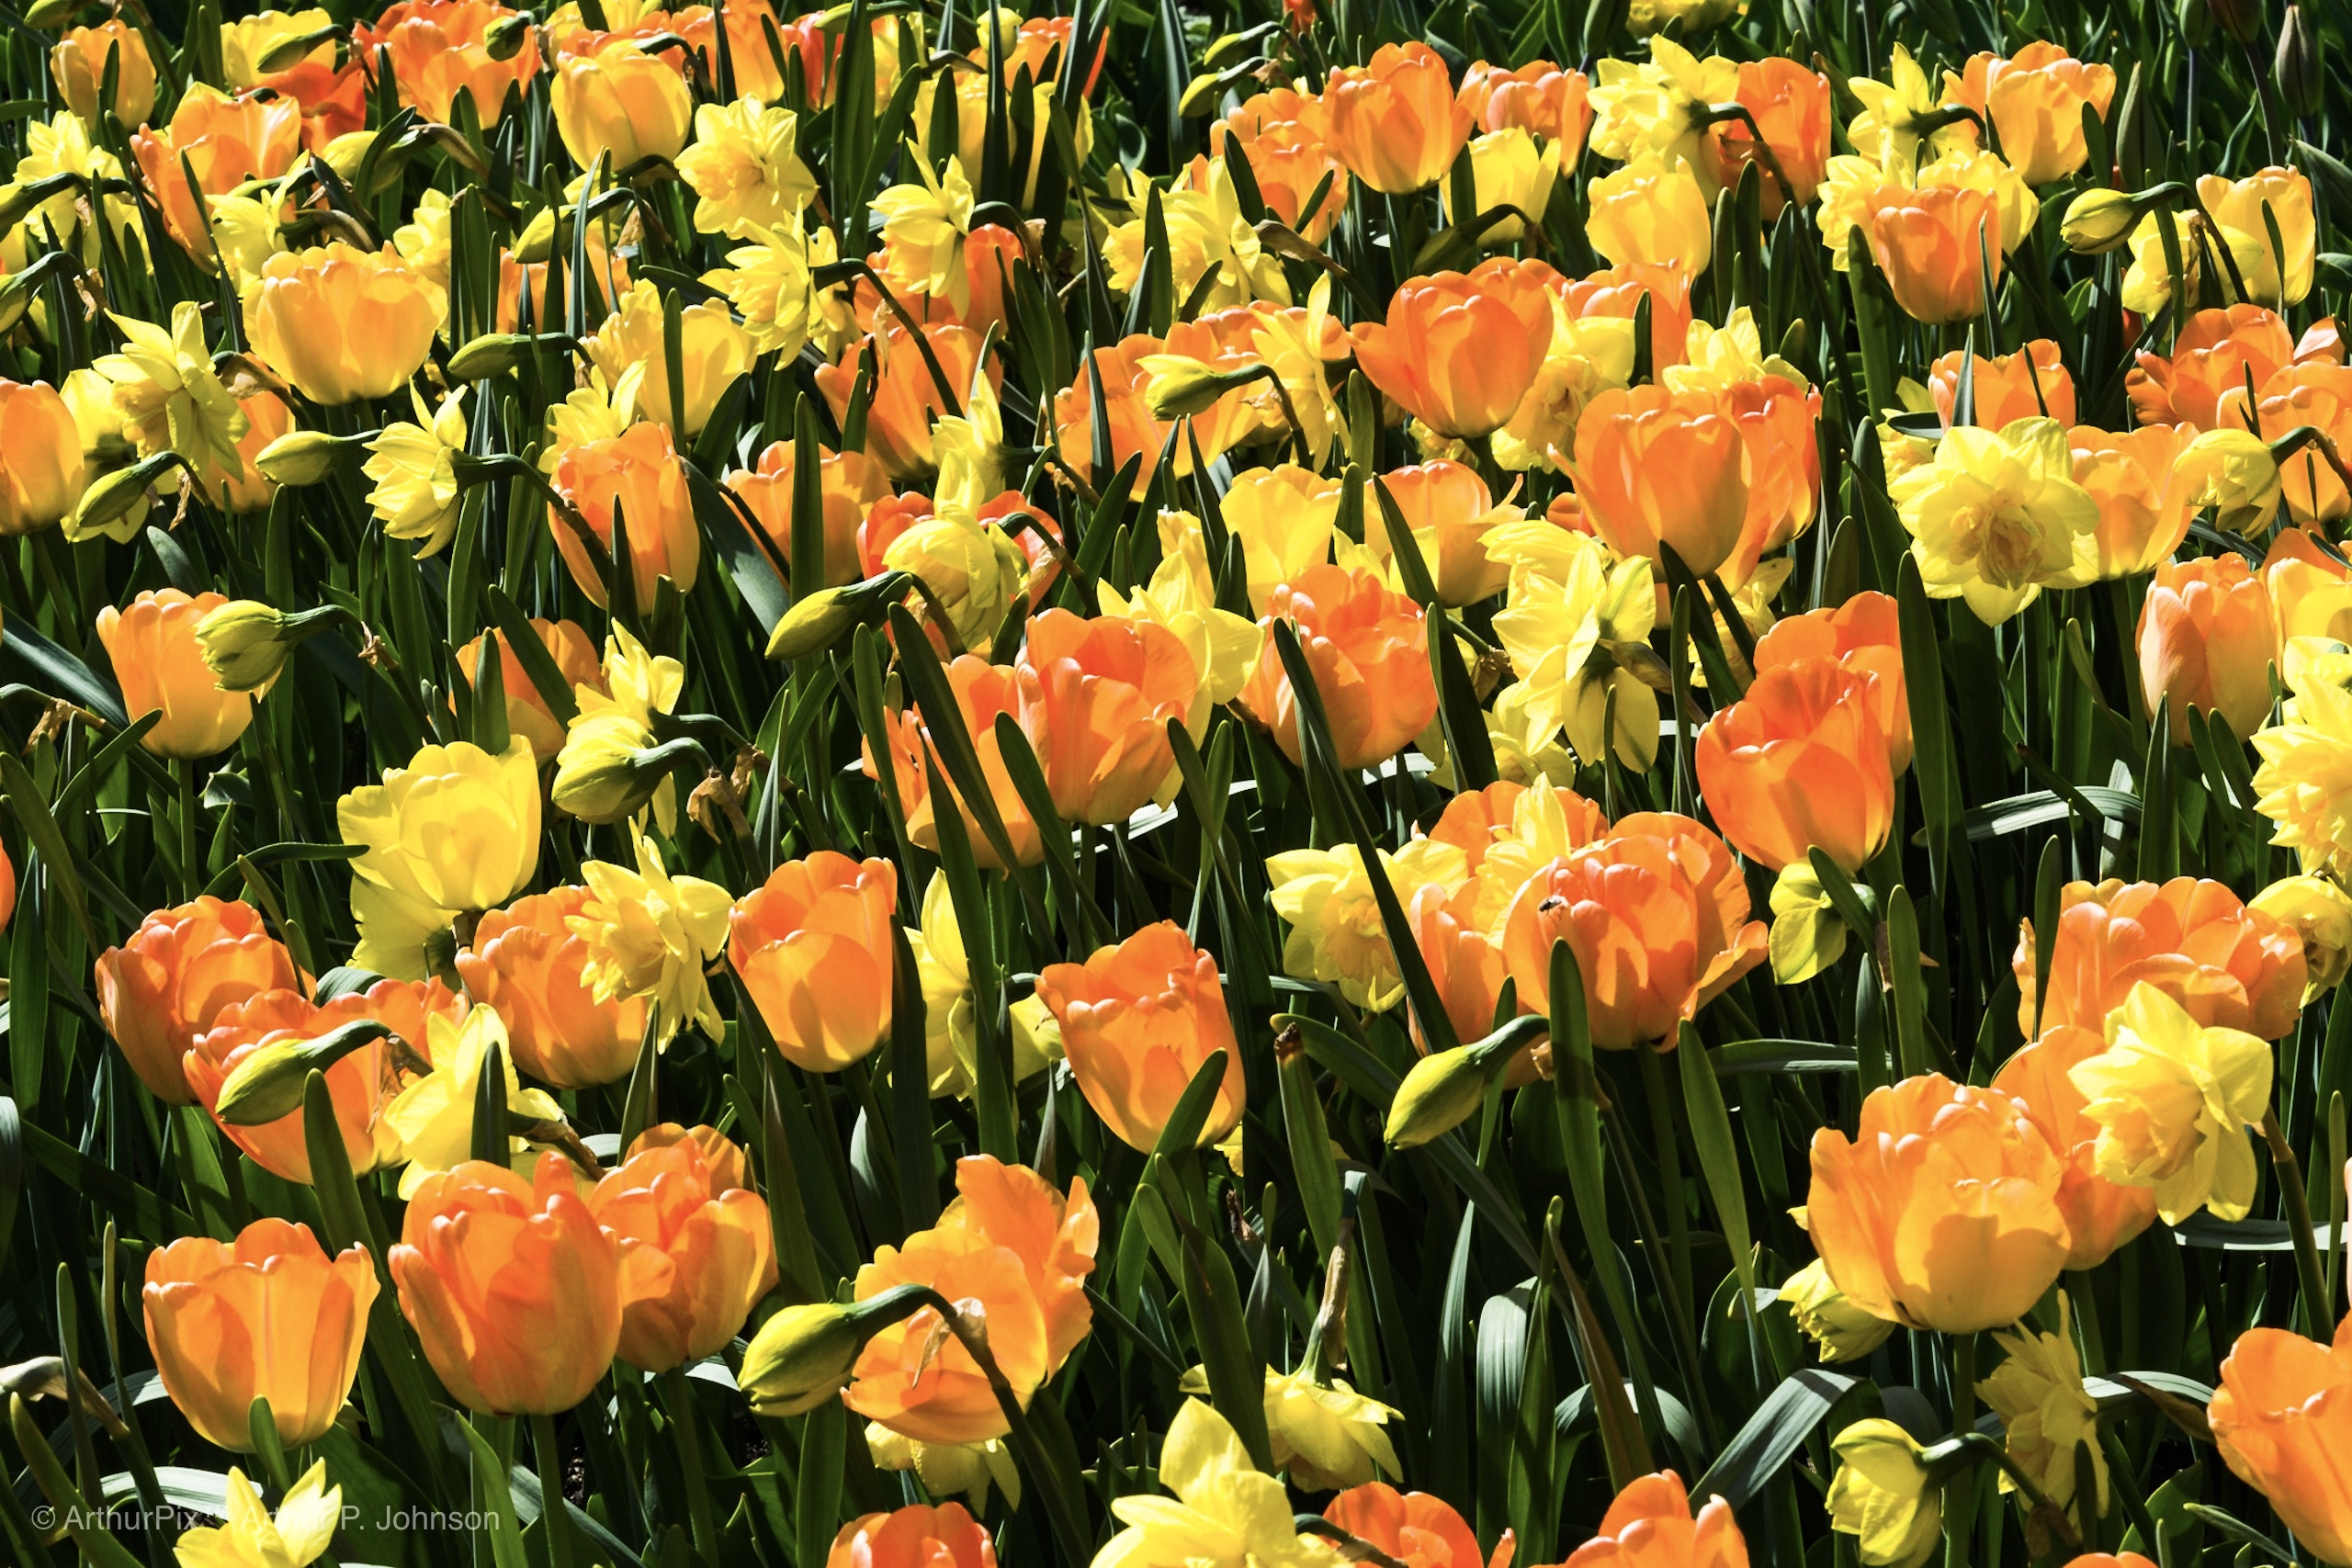 Orange Tulips and Yellow Daffodils.